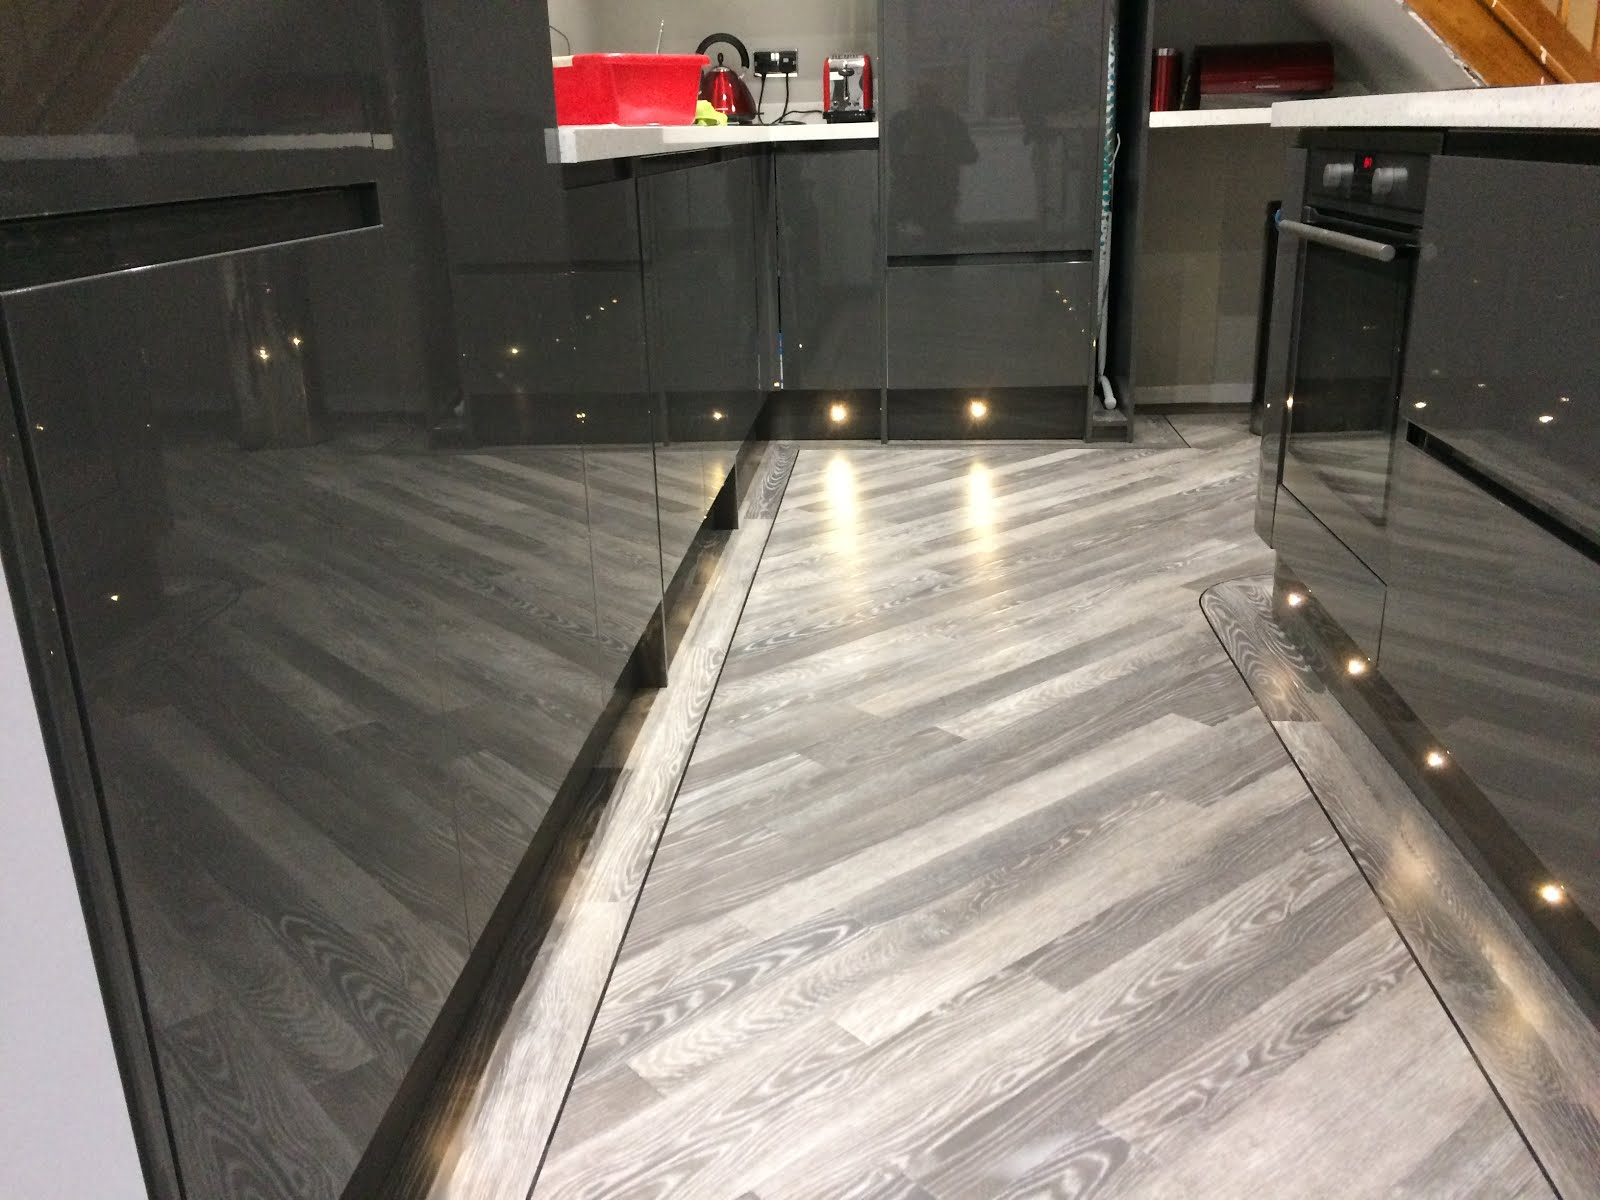 Karndean Flooring Problems Specialist Floors North East: Karndean And Amtico - What